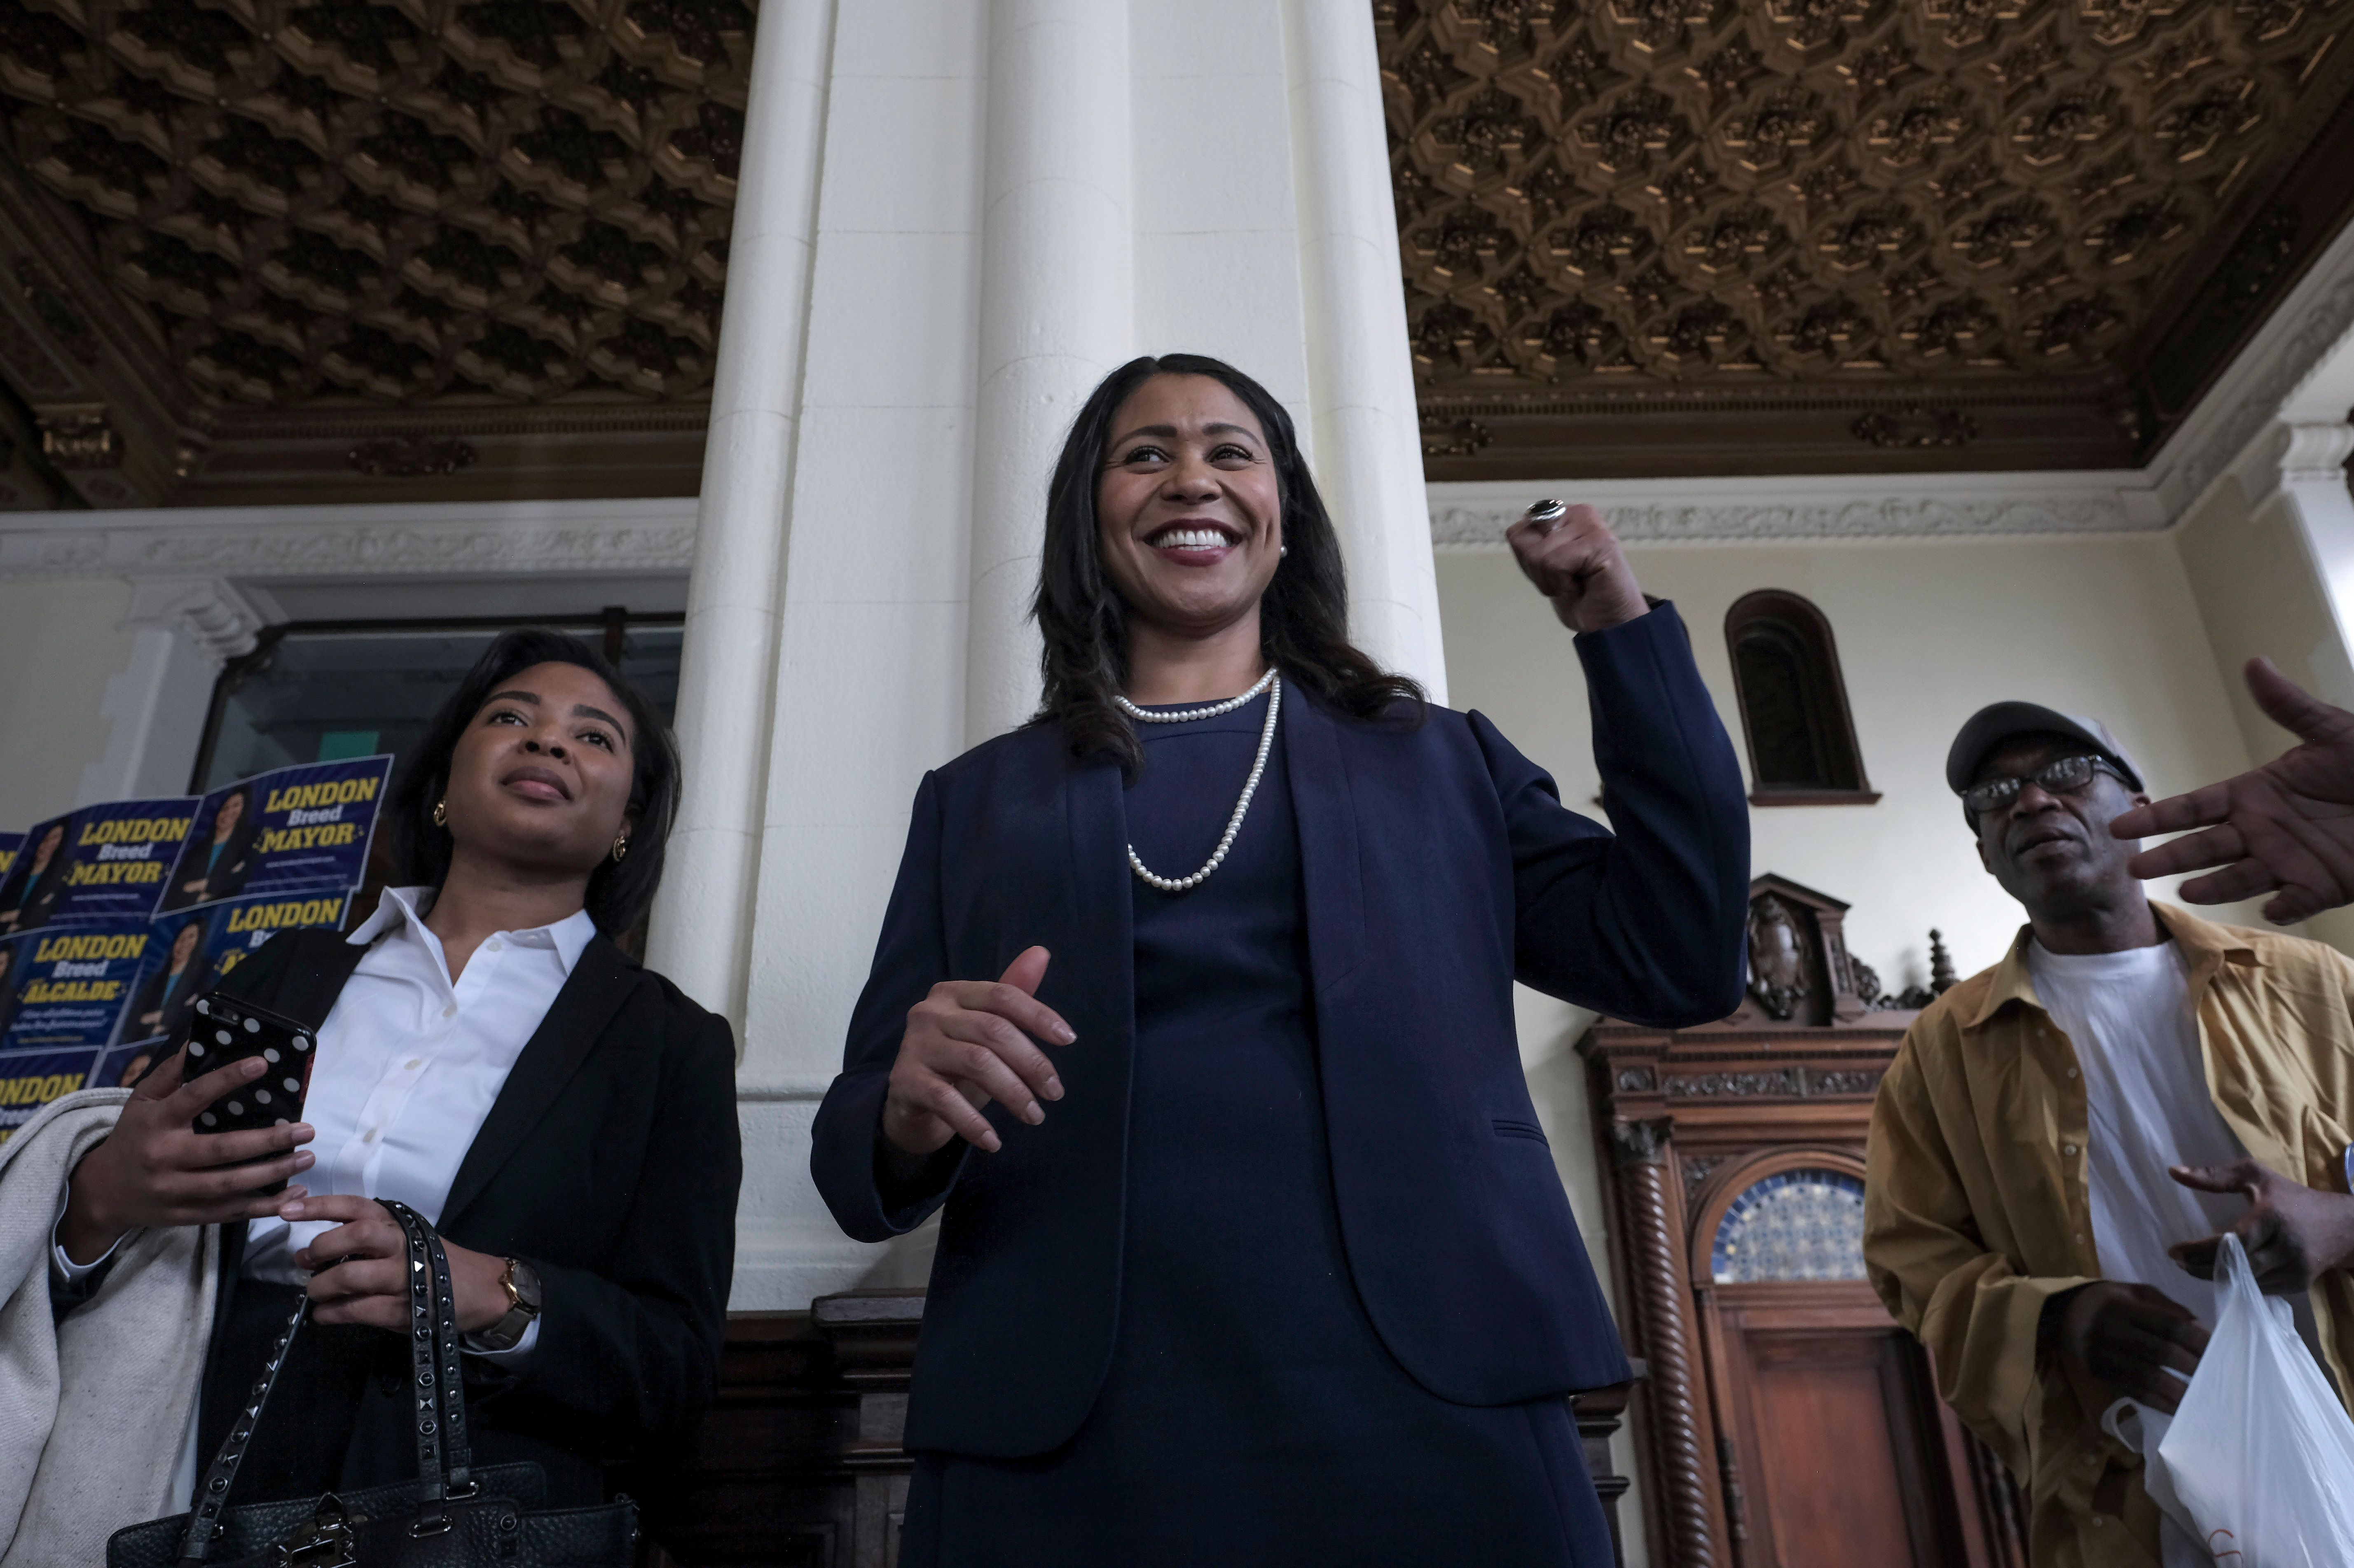 London Breed (center) won a tight June 5 electionand will beSan Francisco's first black female mayor.